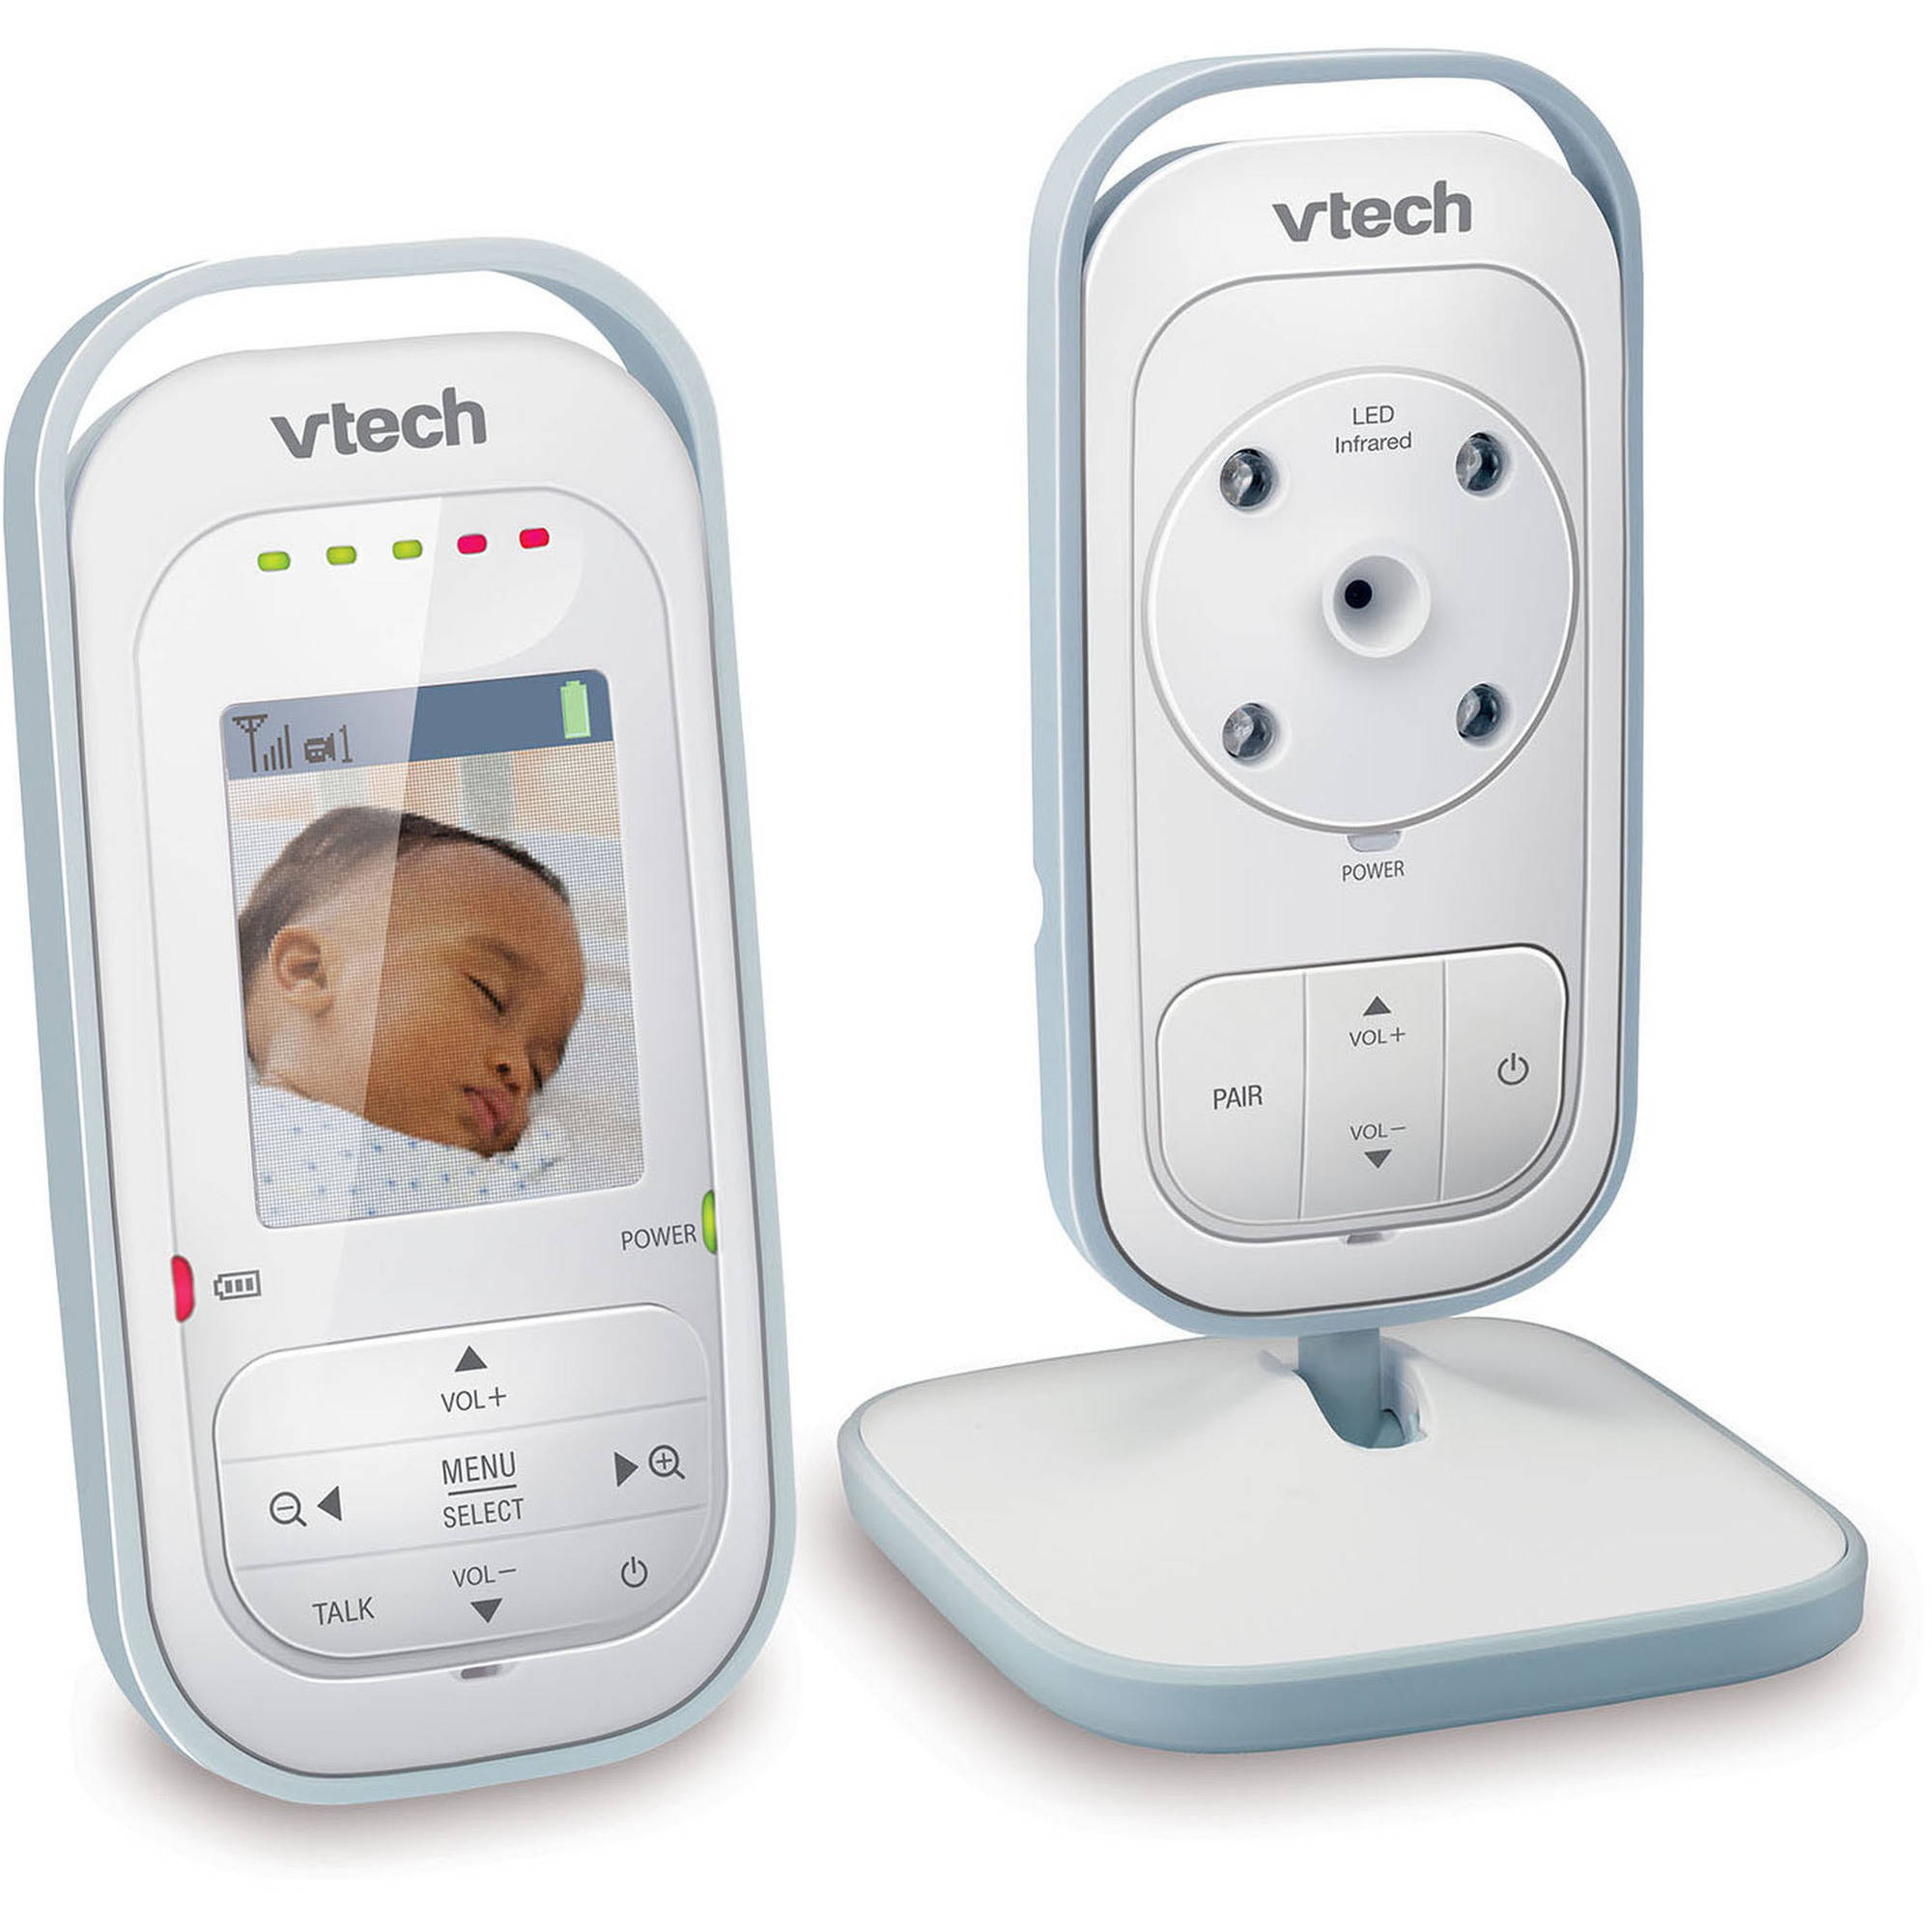 VTech VM311 Safe & Sound Expandable Digital Video Baby Monitor with Full-Color and Automatic Night Vision, 1 Parent Unit, White/Silver